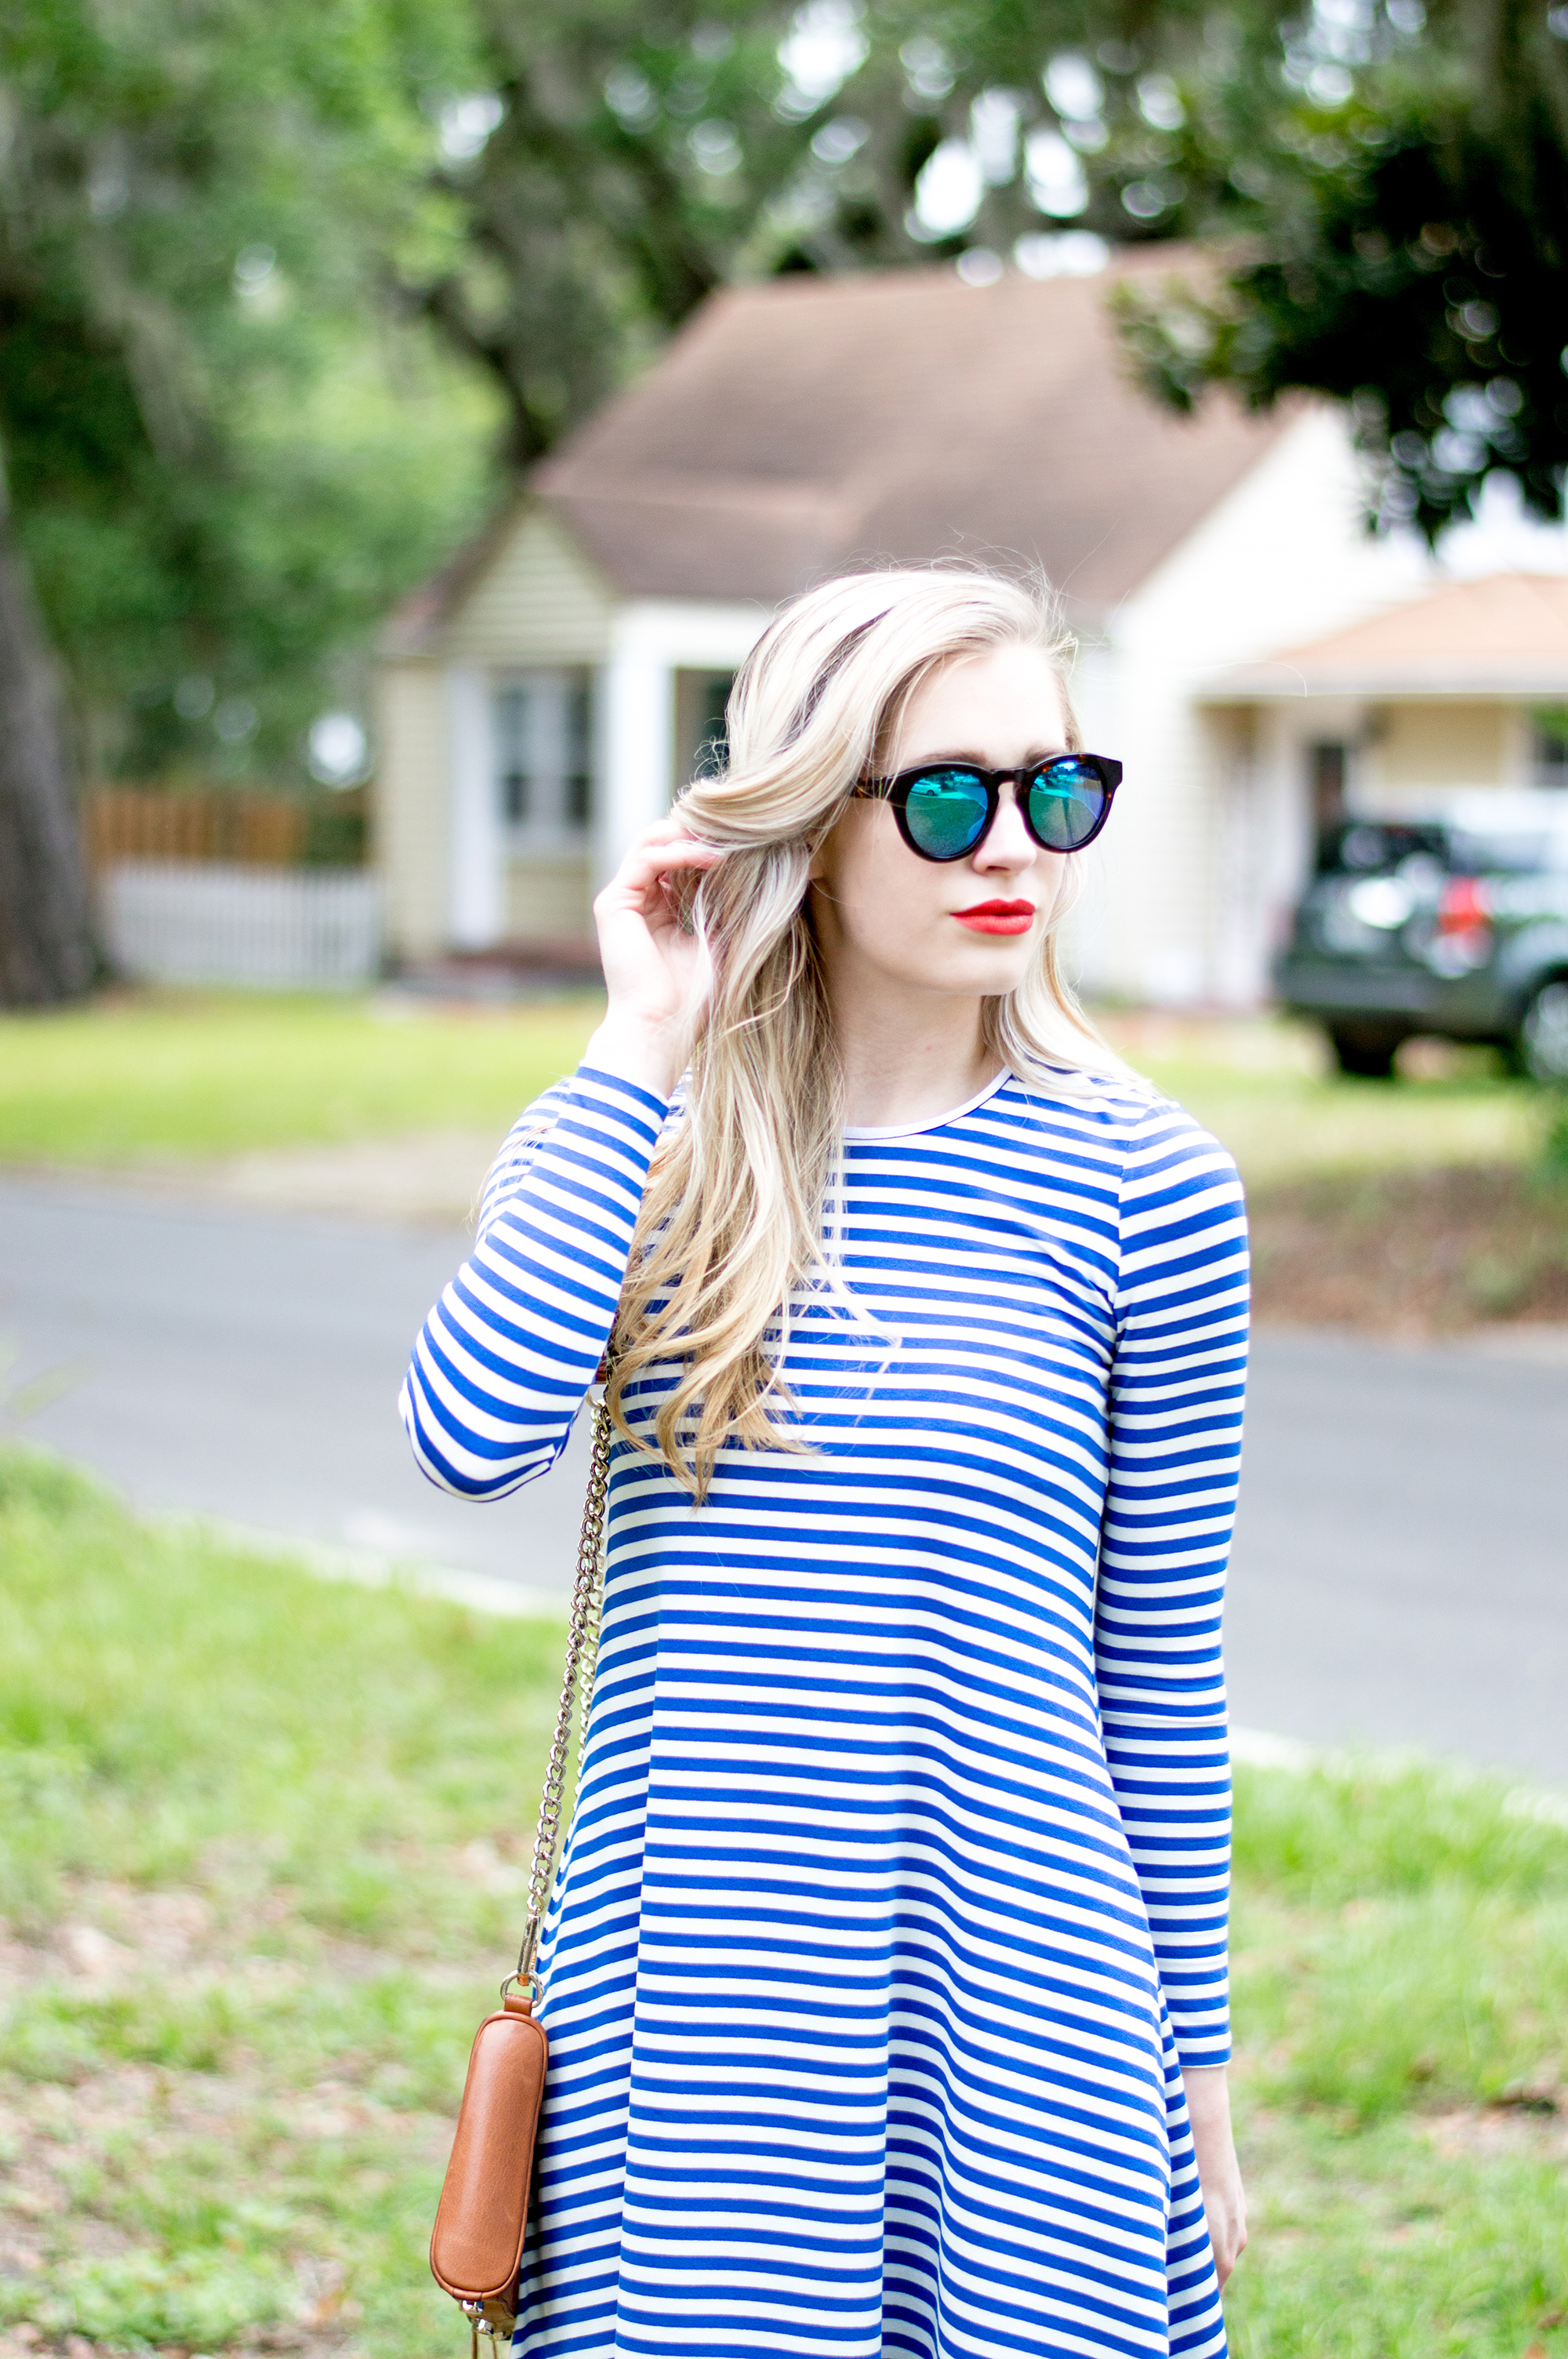 styelled-blog-fashion-style-beauty-lifestyle-blogger-florida-like-to-know-it-jane-hudson-stripes-striped-stripe-dress-sundress-memorial-day-diff-eyewear-sunglasses-rebecca-minkoff-08